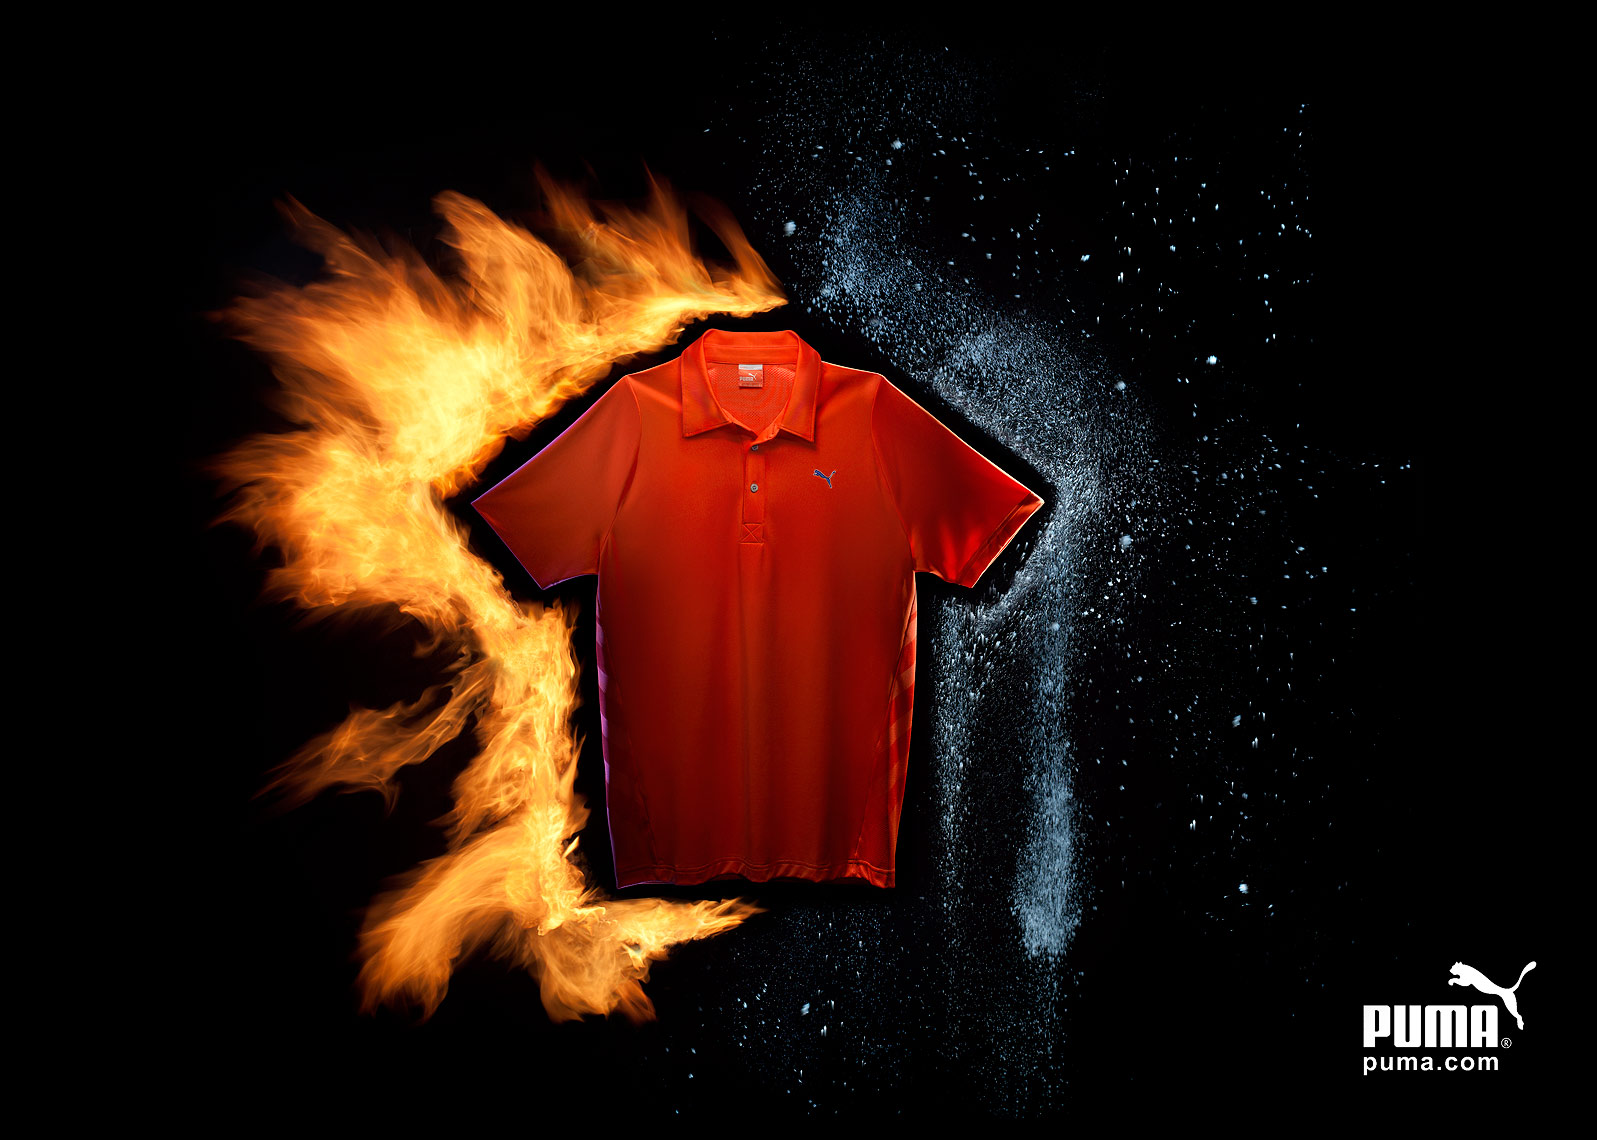 Puma_Massimo_Fire_And_Ice_master3_logo.jpg